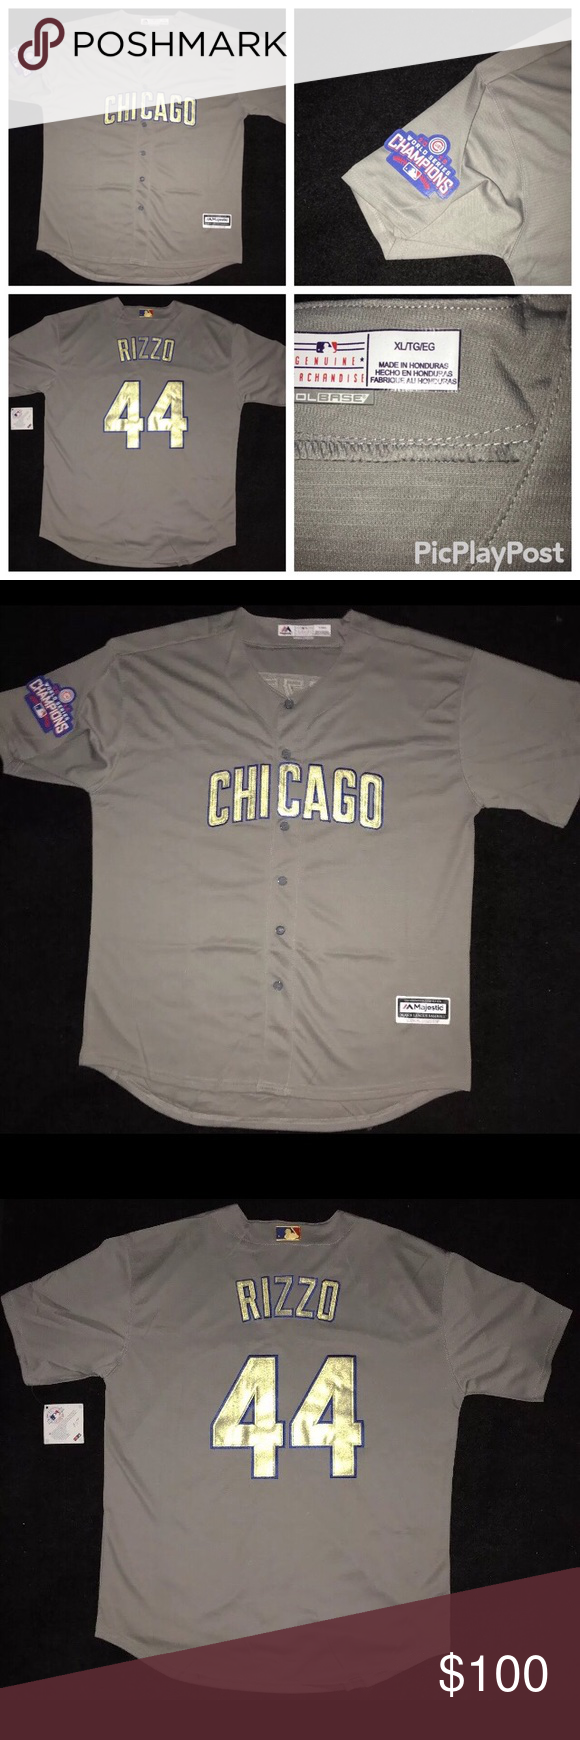 online retailer 36775 3b511 Cubs Anthony Rizzo Gold Jersey Chicago Cubs - Anthony Rizzo ...